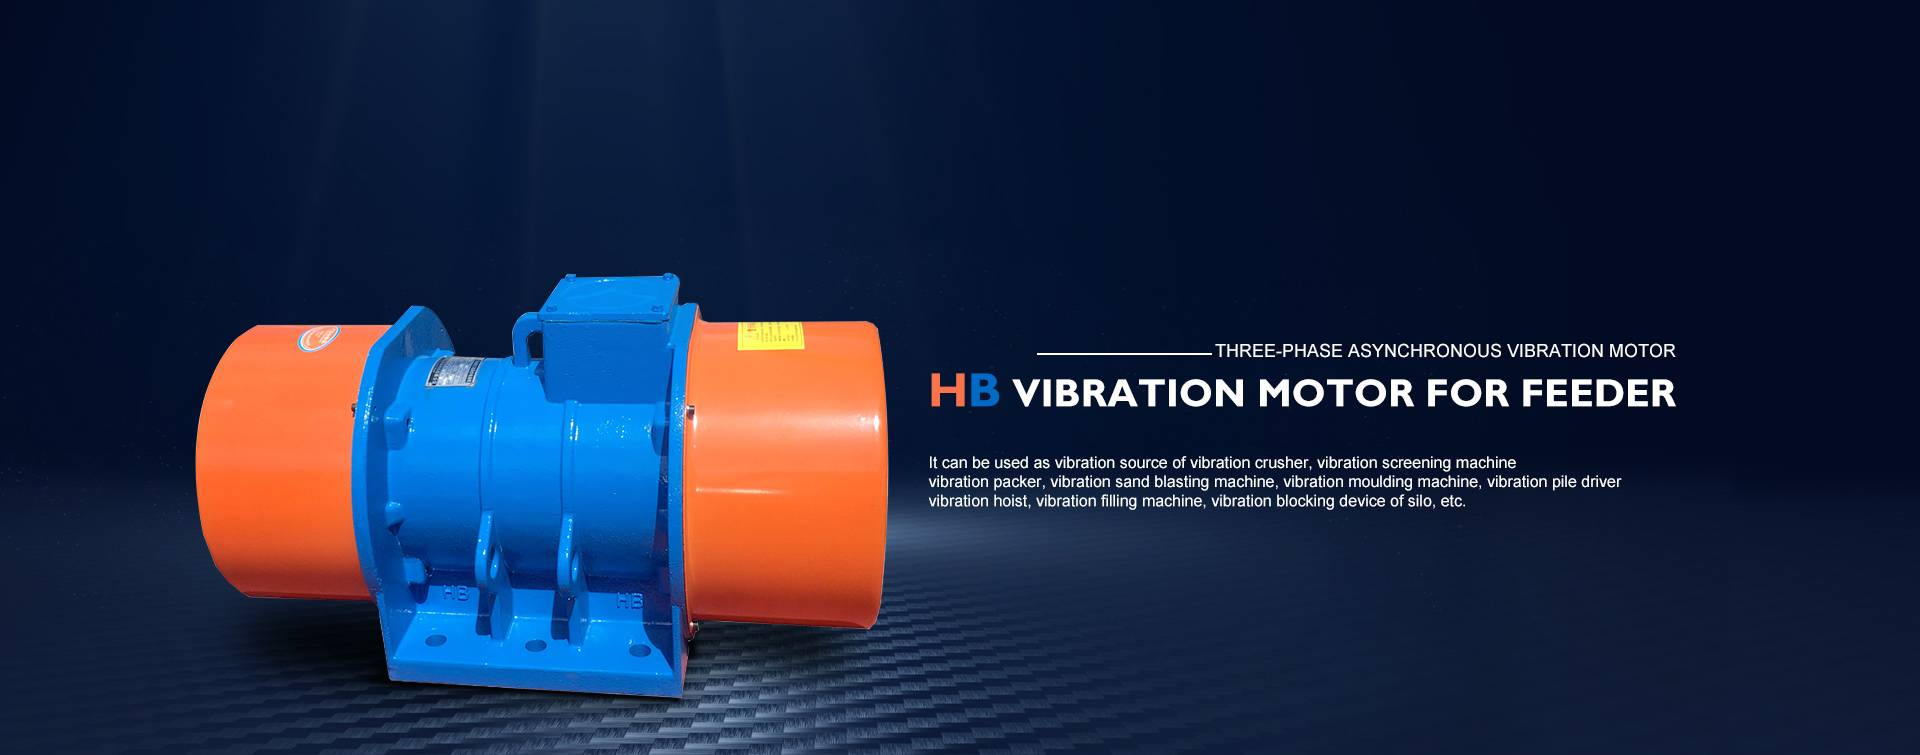 motor HB Vibration bo feeder